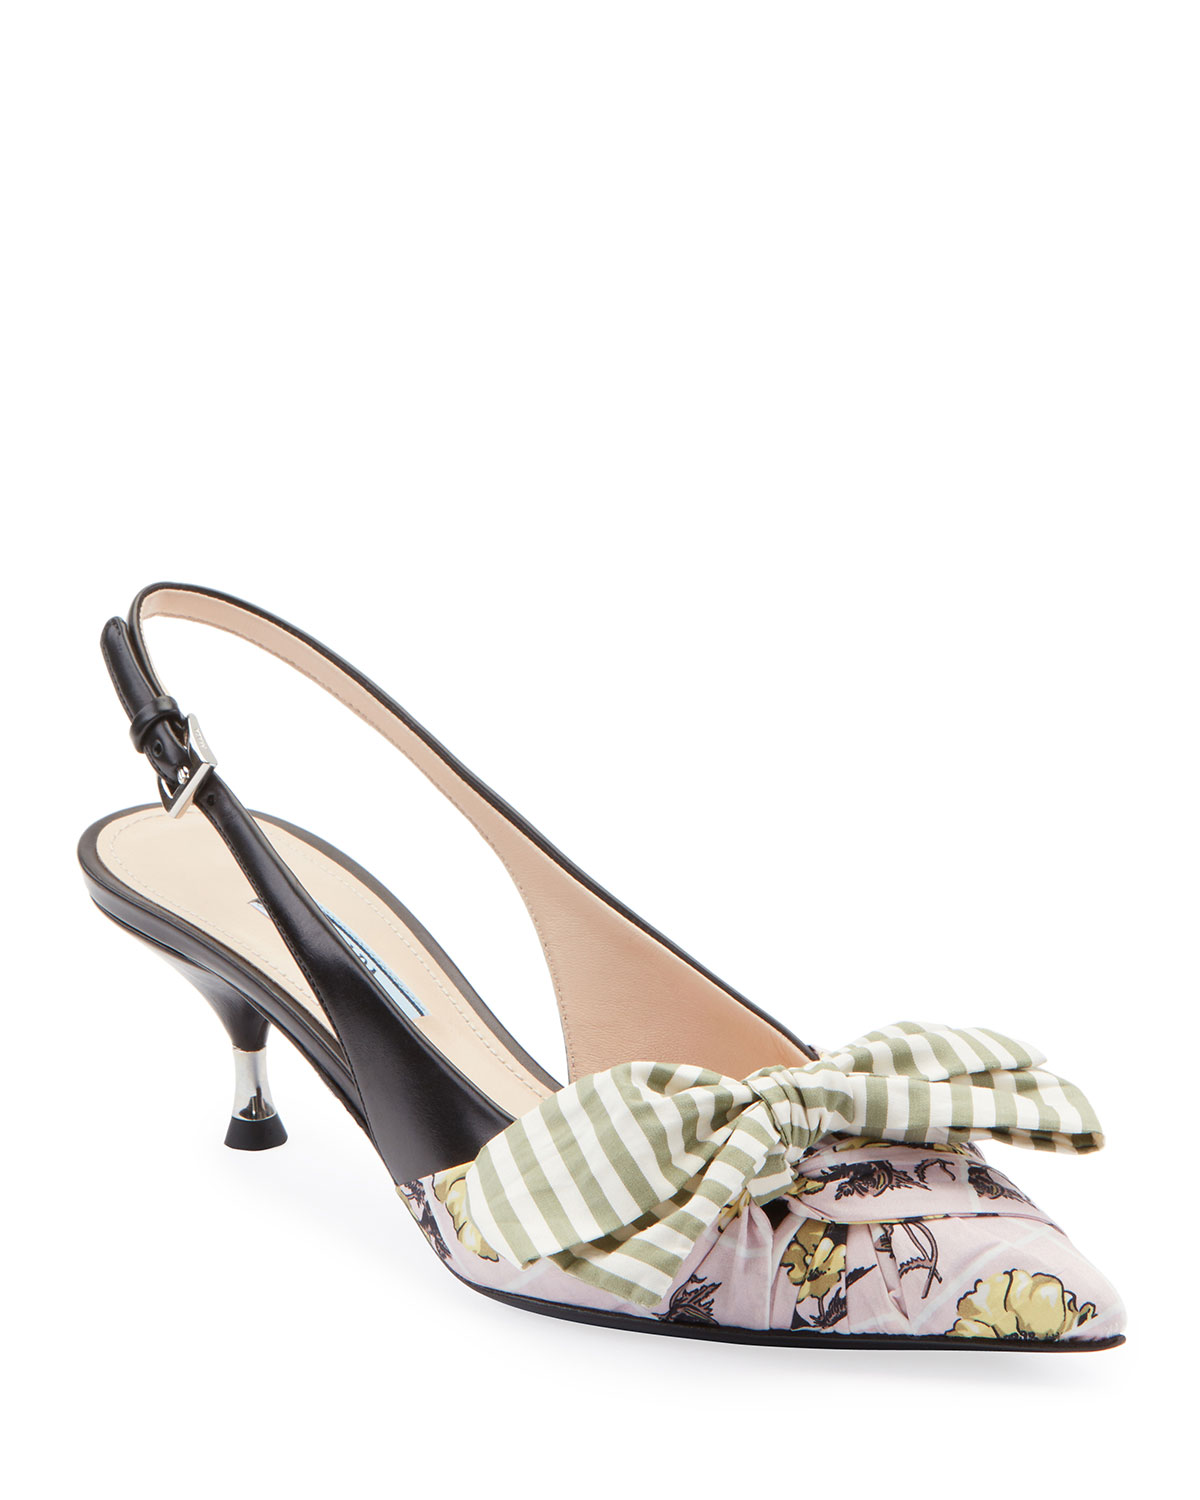 4d1f6baca3dbd Prada Fabric & Leather Kitten-Heel Slingback Pumps with Bow | Neiman ...